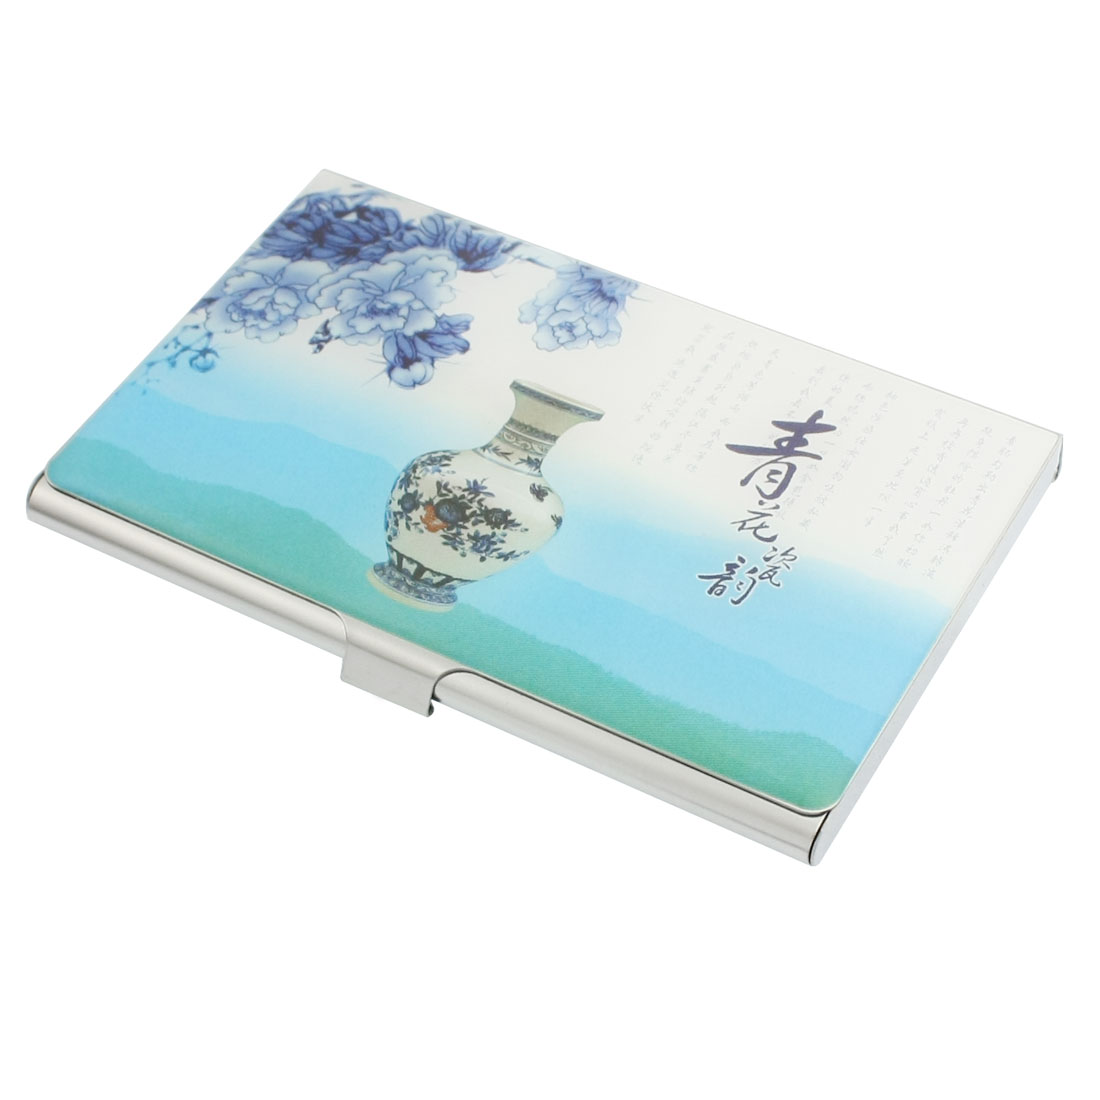 Mirror Polish Blue and White Porcelain Pattern Business Card Holder